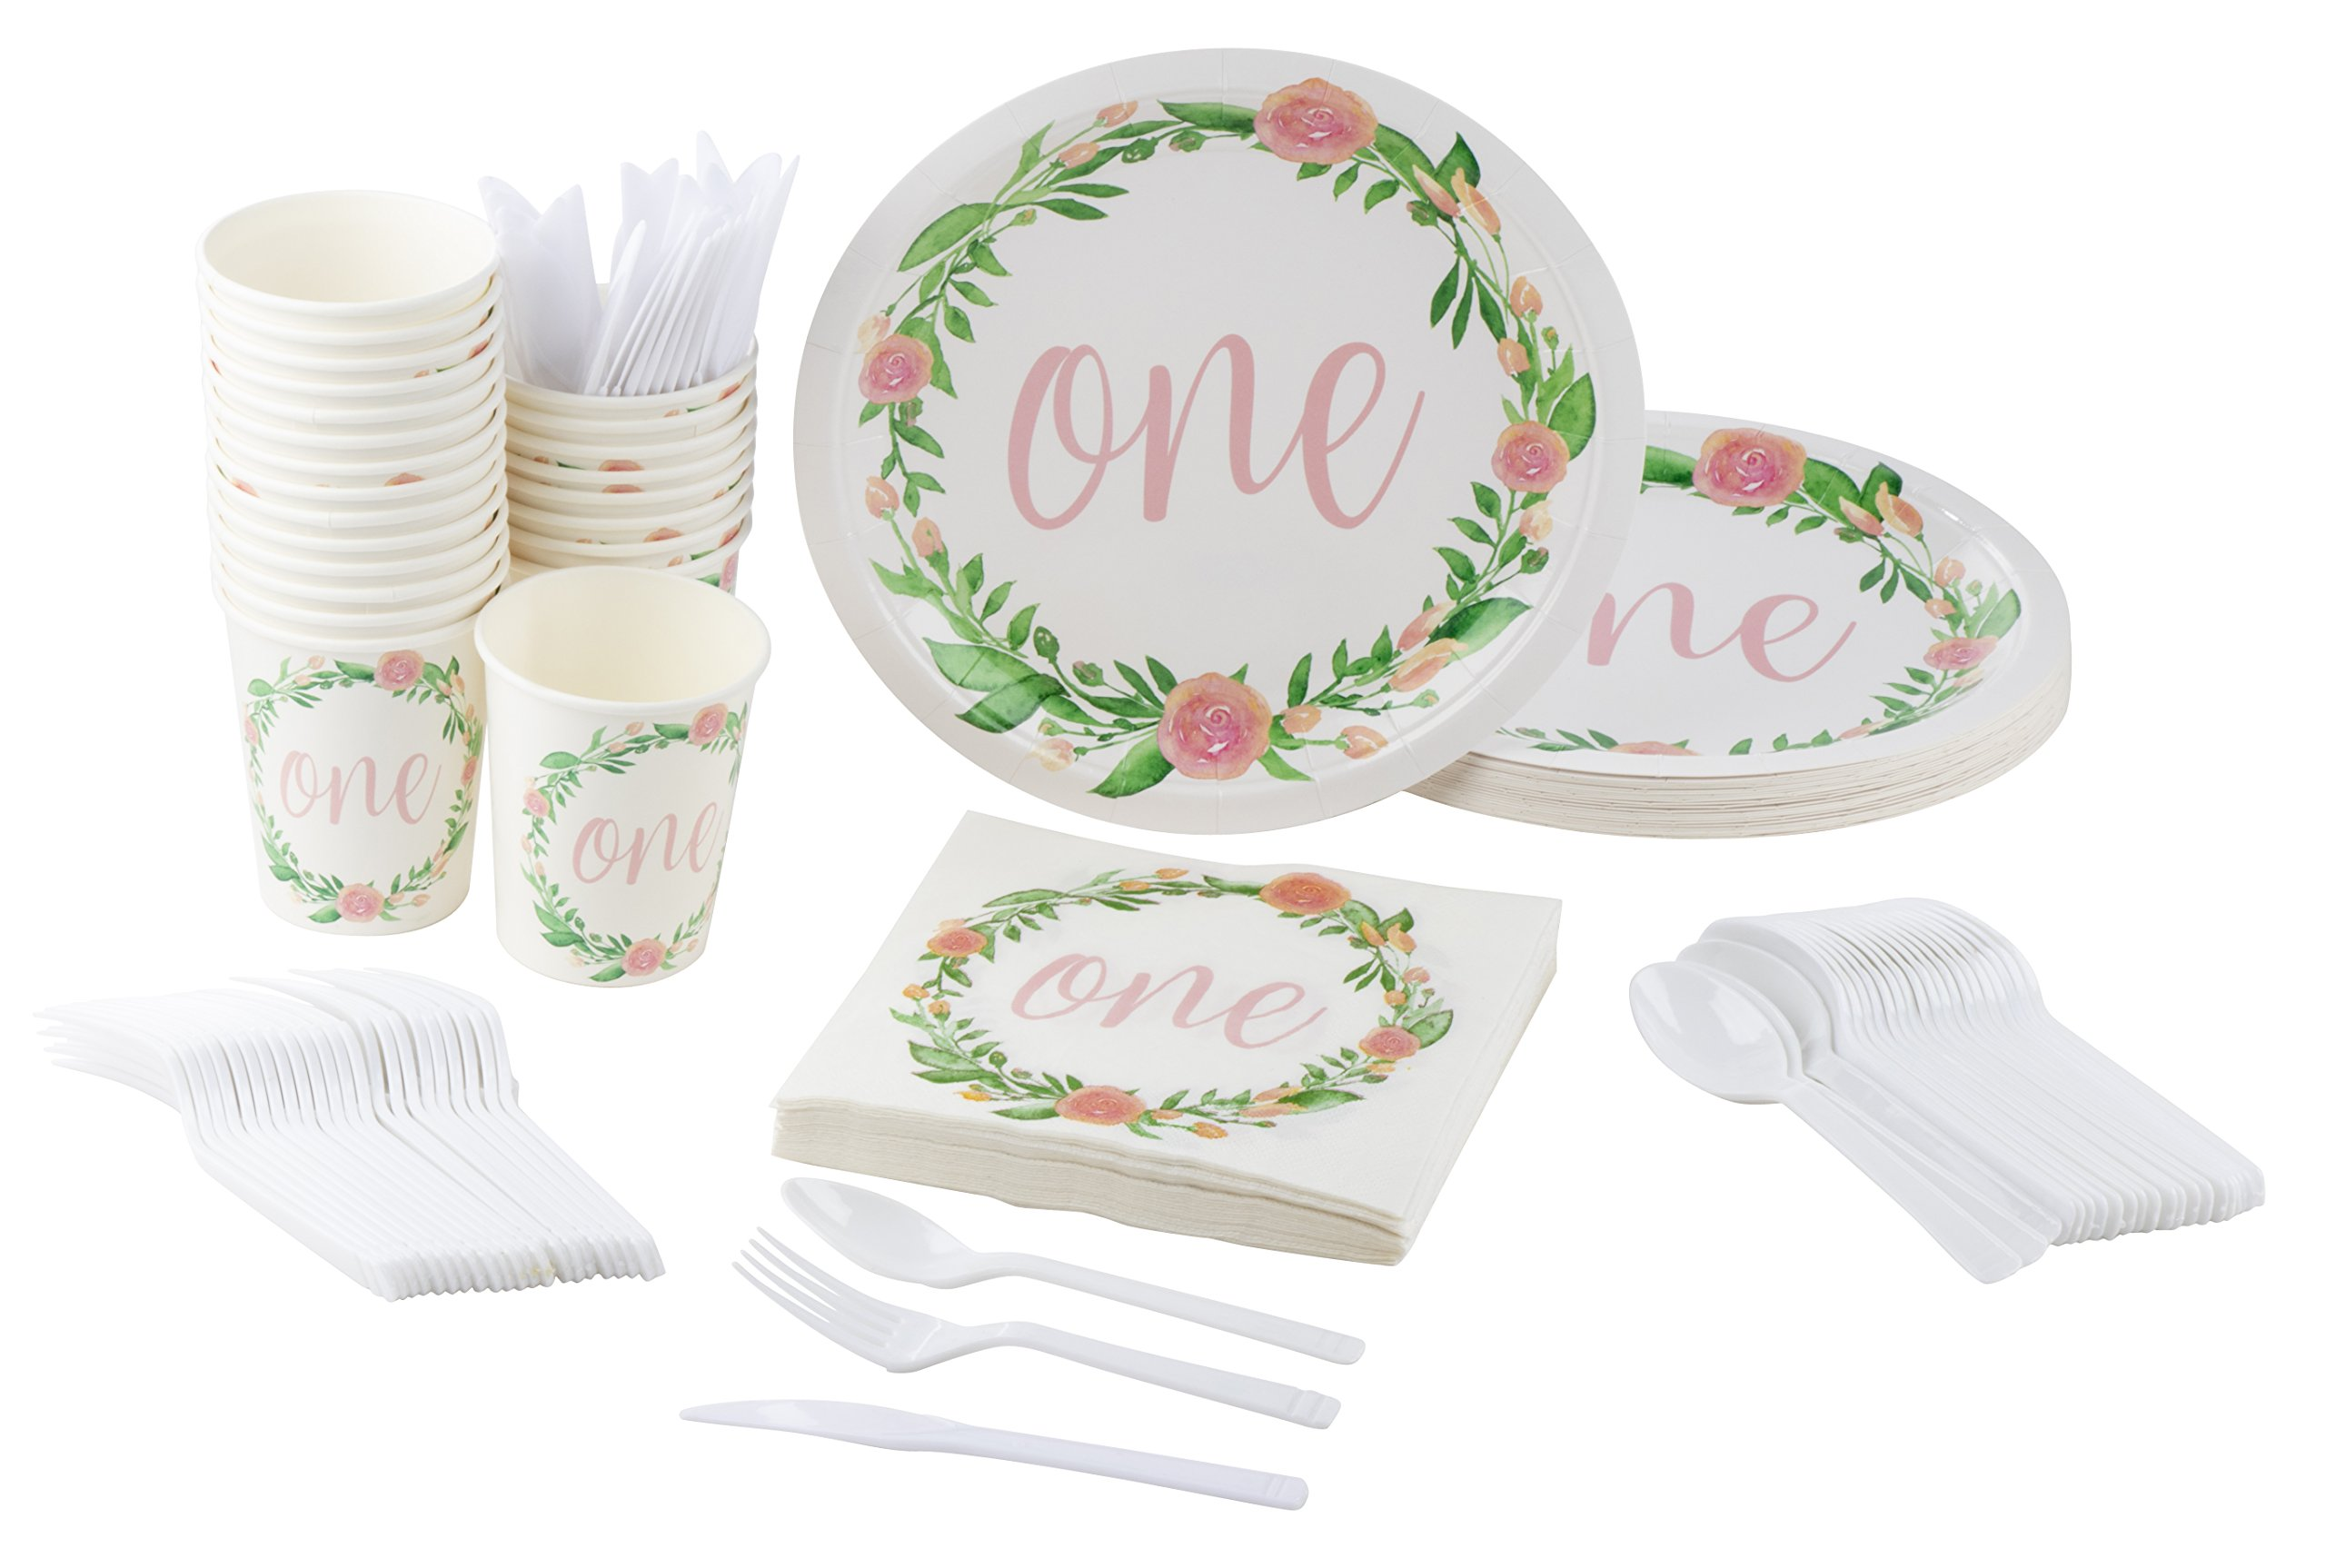 Disposable Dinnerware Set - Serves 24-1st Birthday Party Supplies for Kids Birthdays, Floral Design - Includes Plastic Knives, Spoons, Forks, Paper Plates, Napkins, Cups